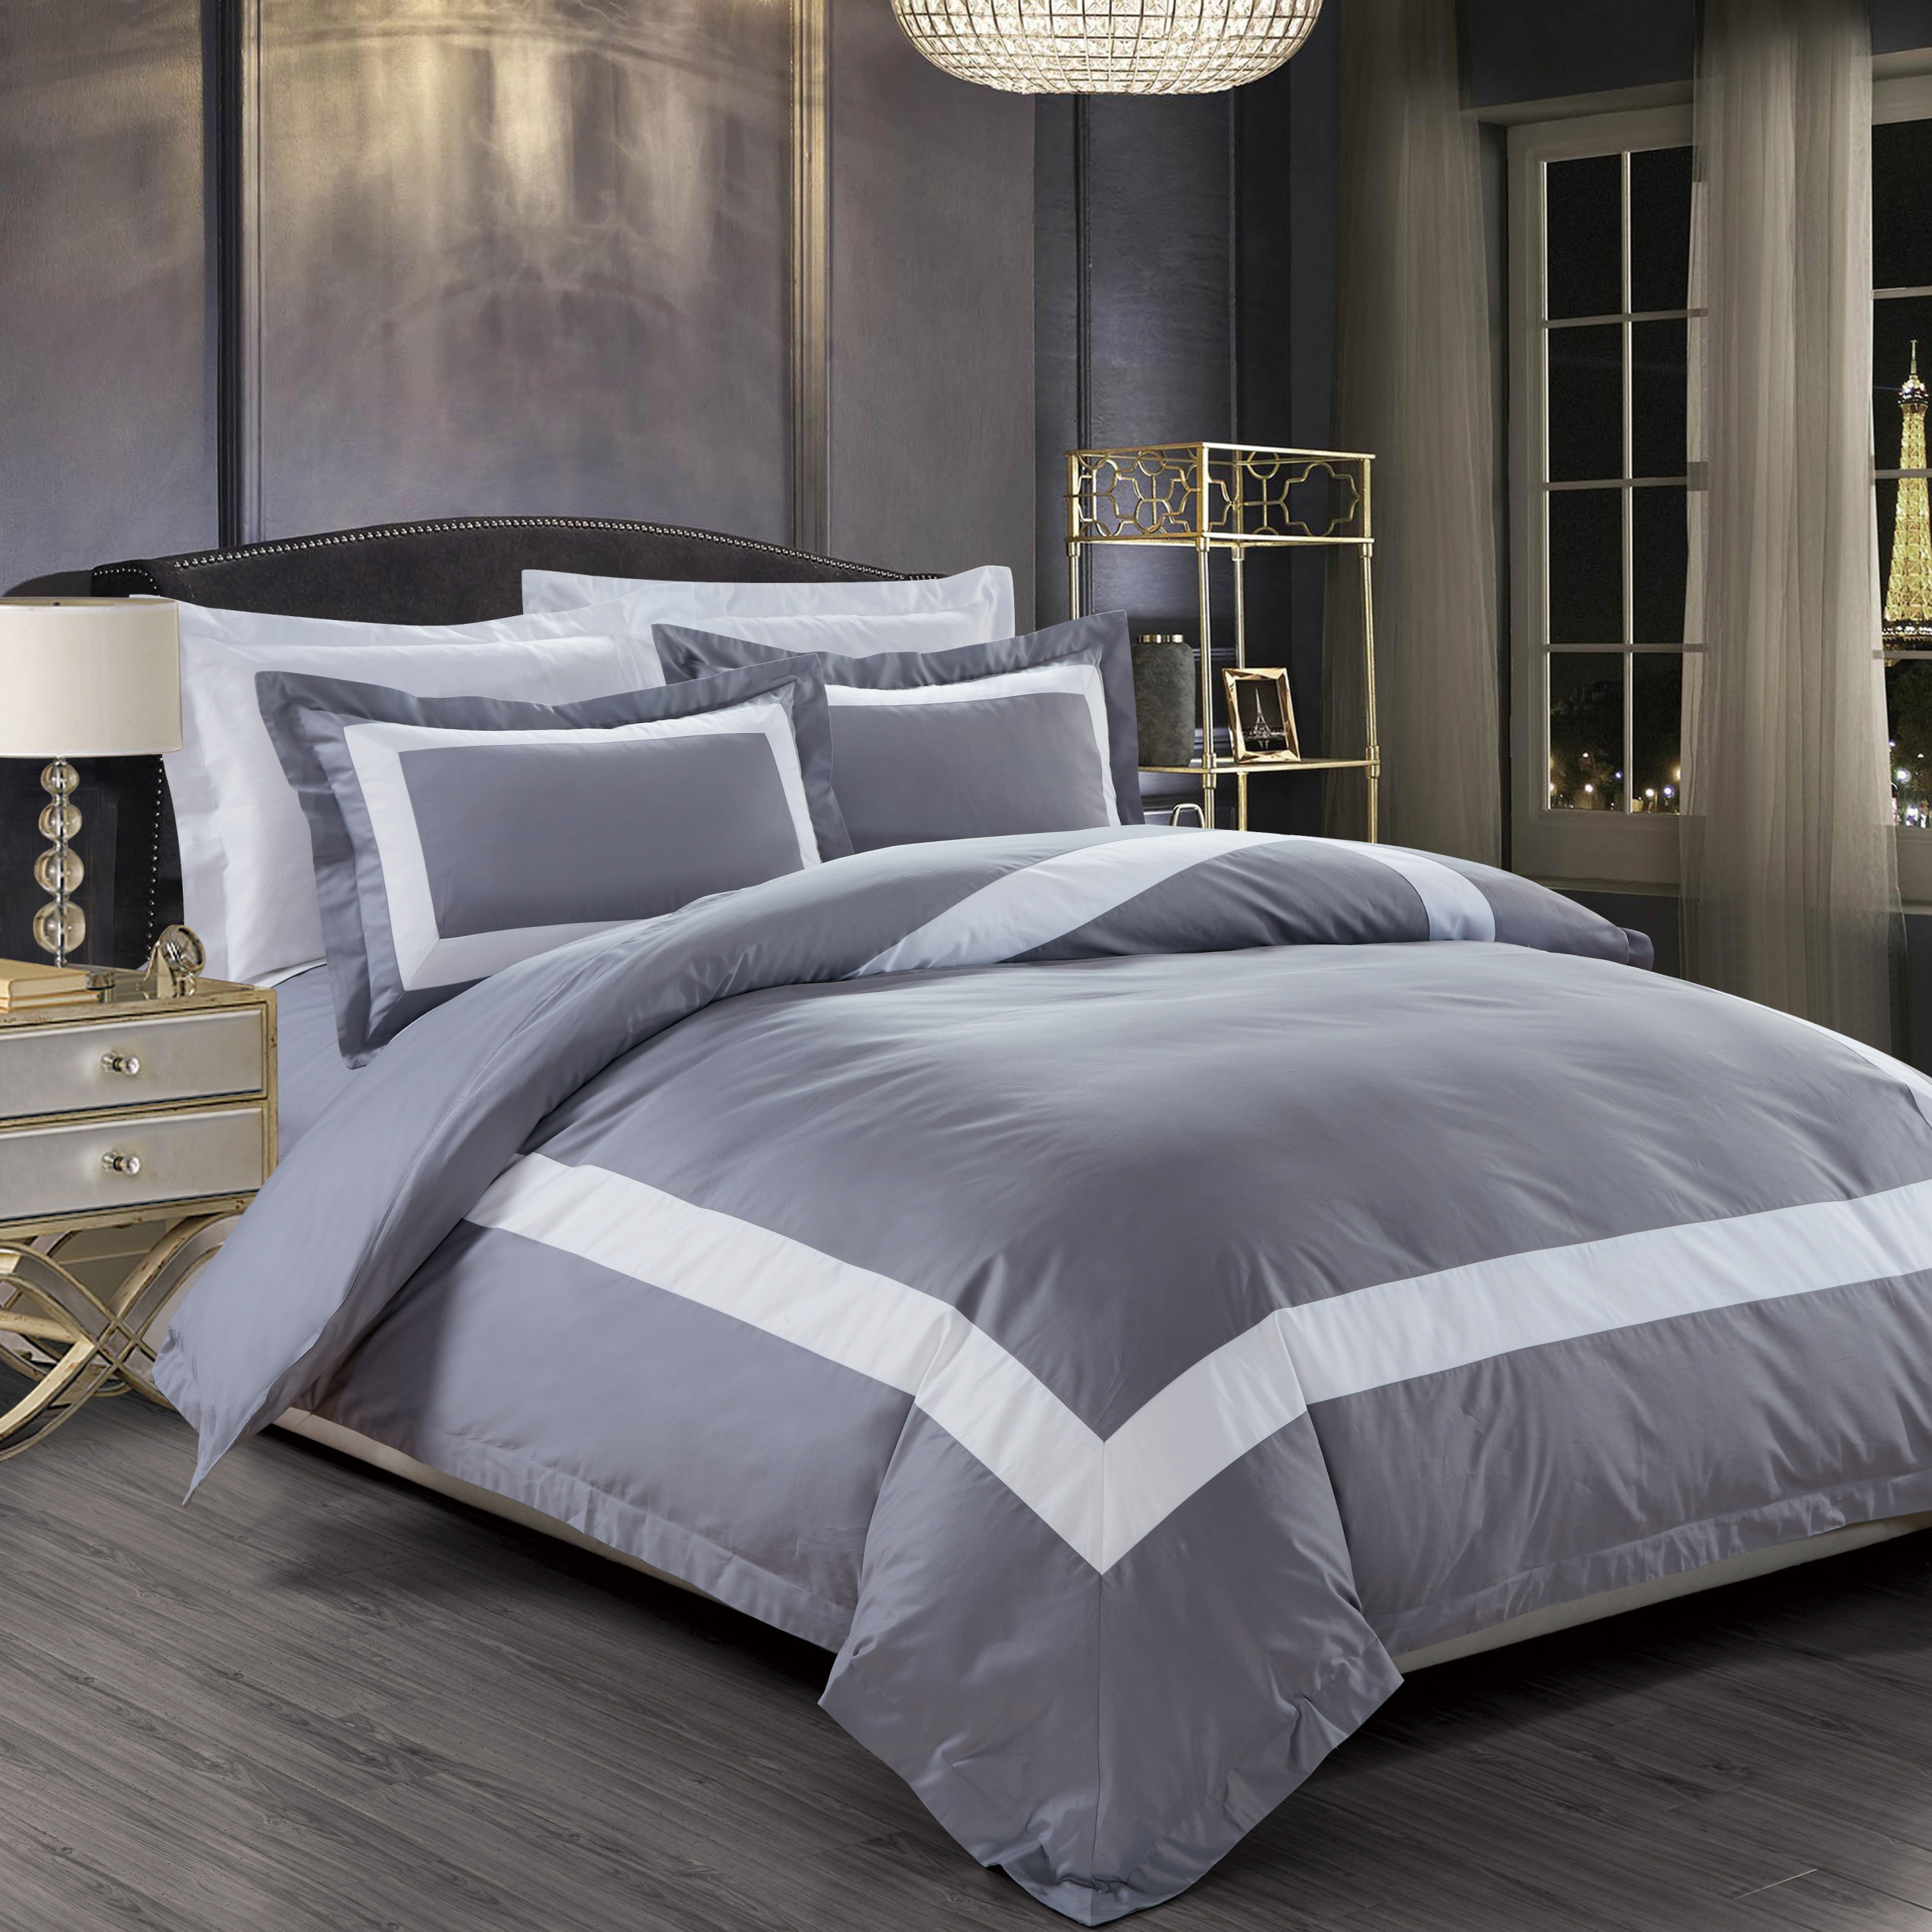 a71dca62e5b8 OC - Royal Hotel Collection Border Series White Grey Bed Set   Furniture &  Home Décor   FortyTwo